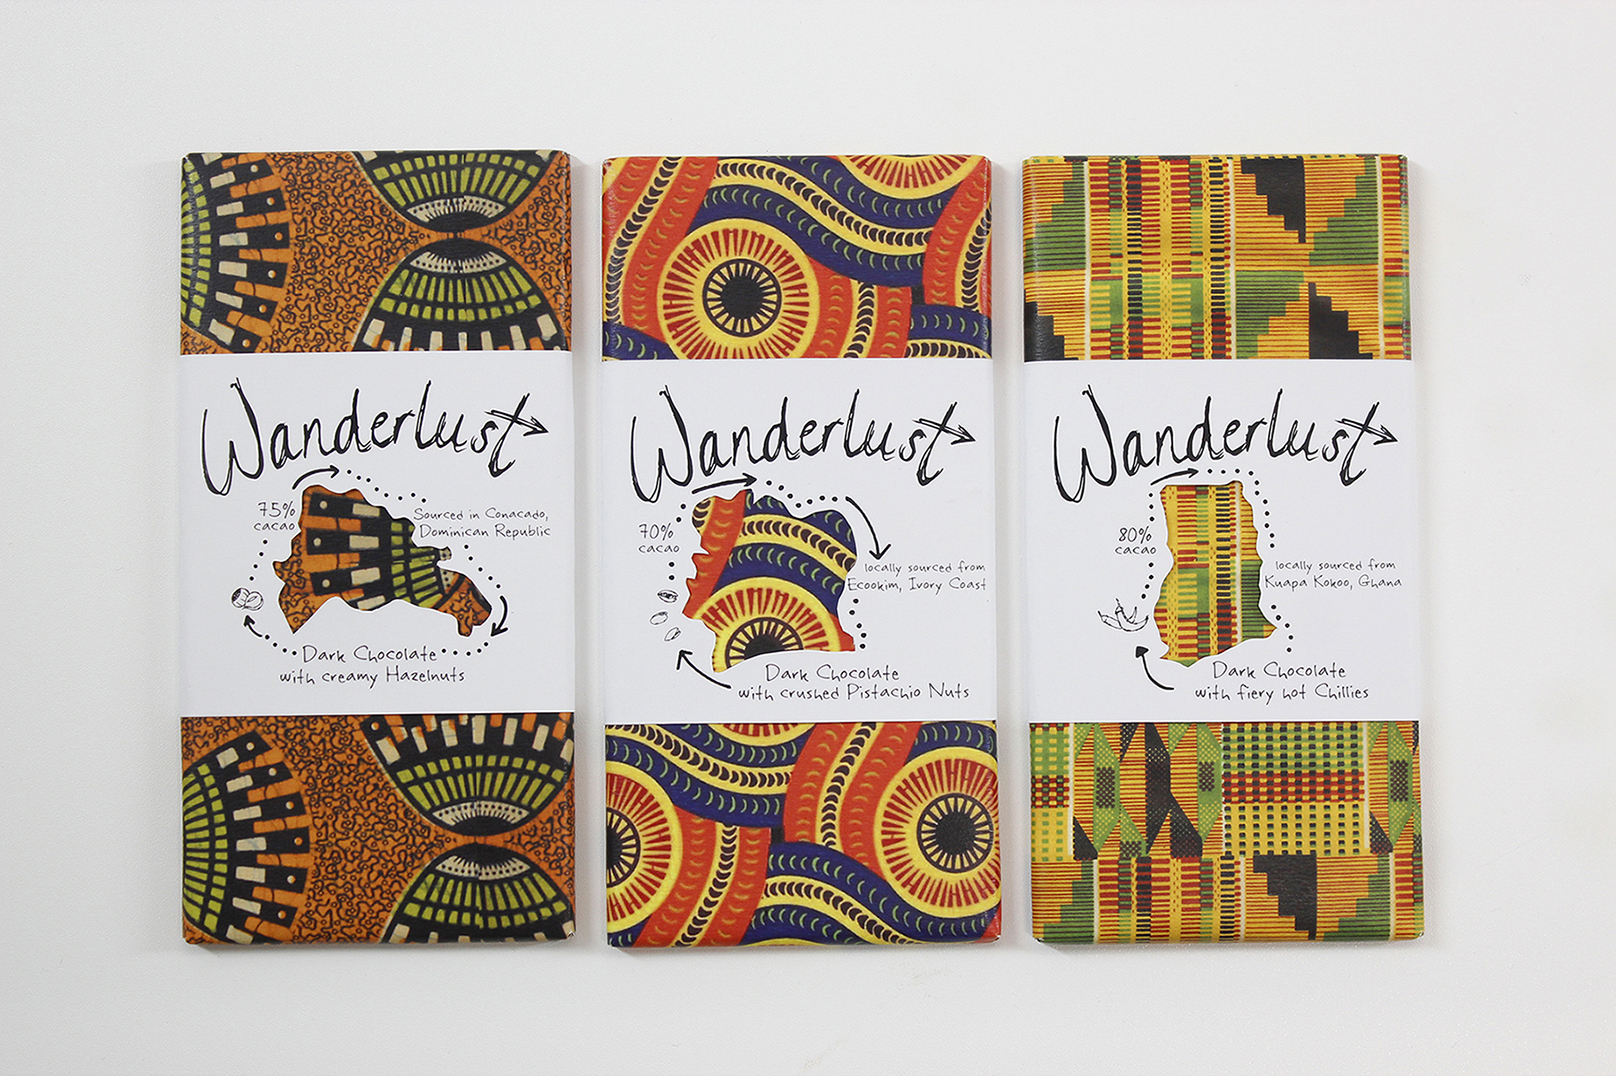 Student Concept for Wanderlust Fairtrade Chocolate